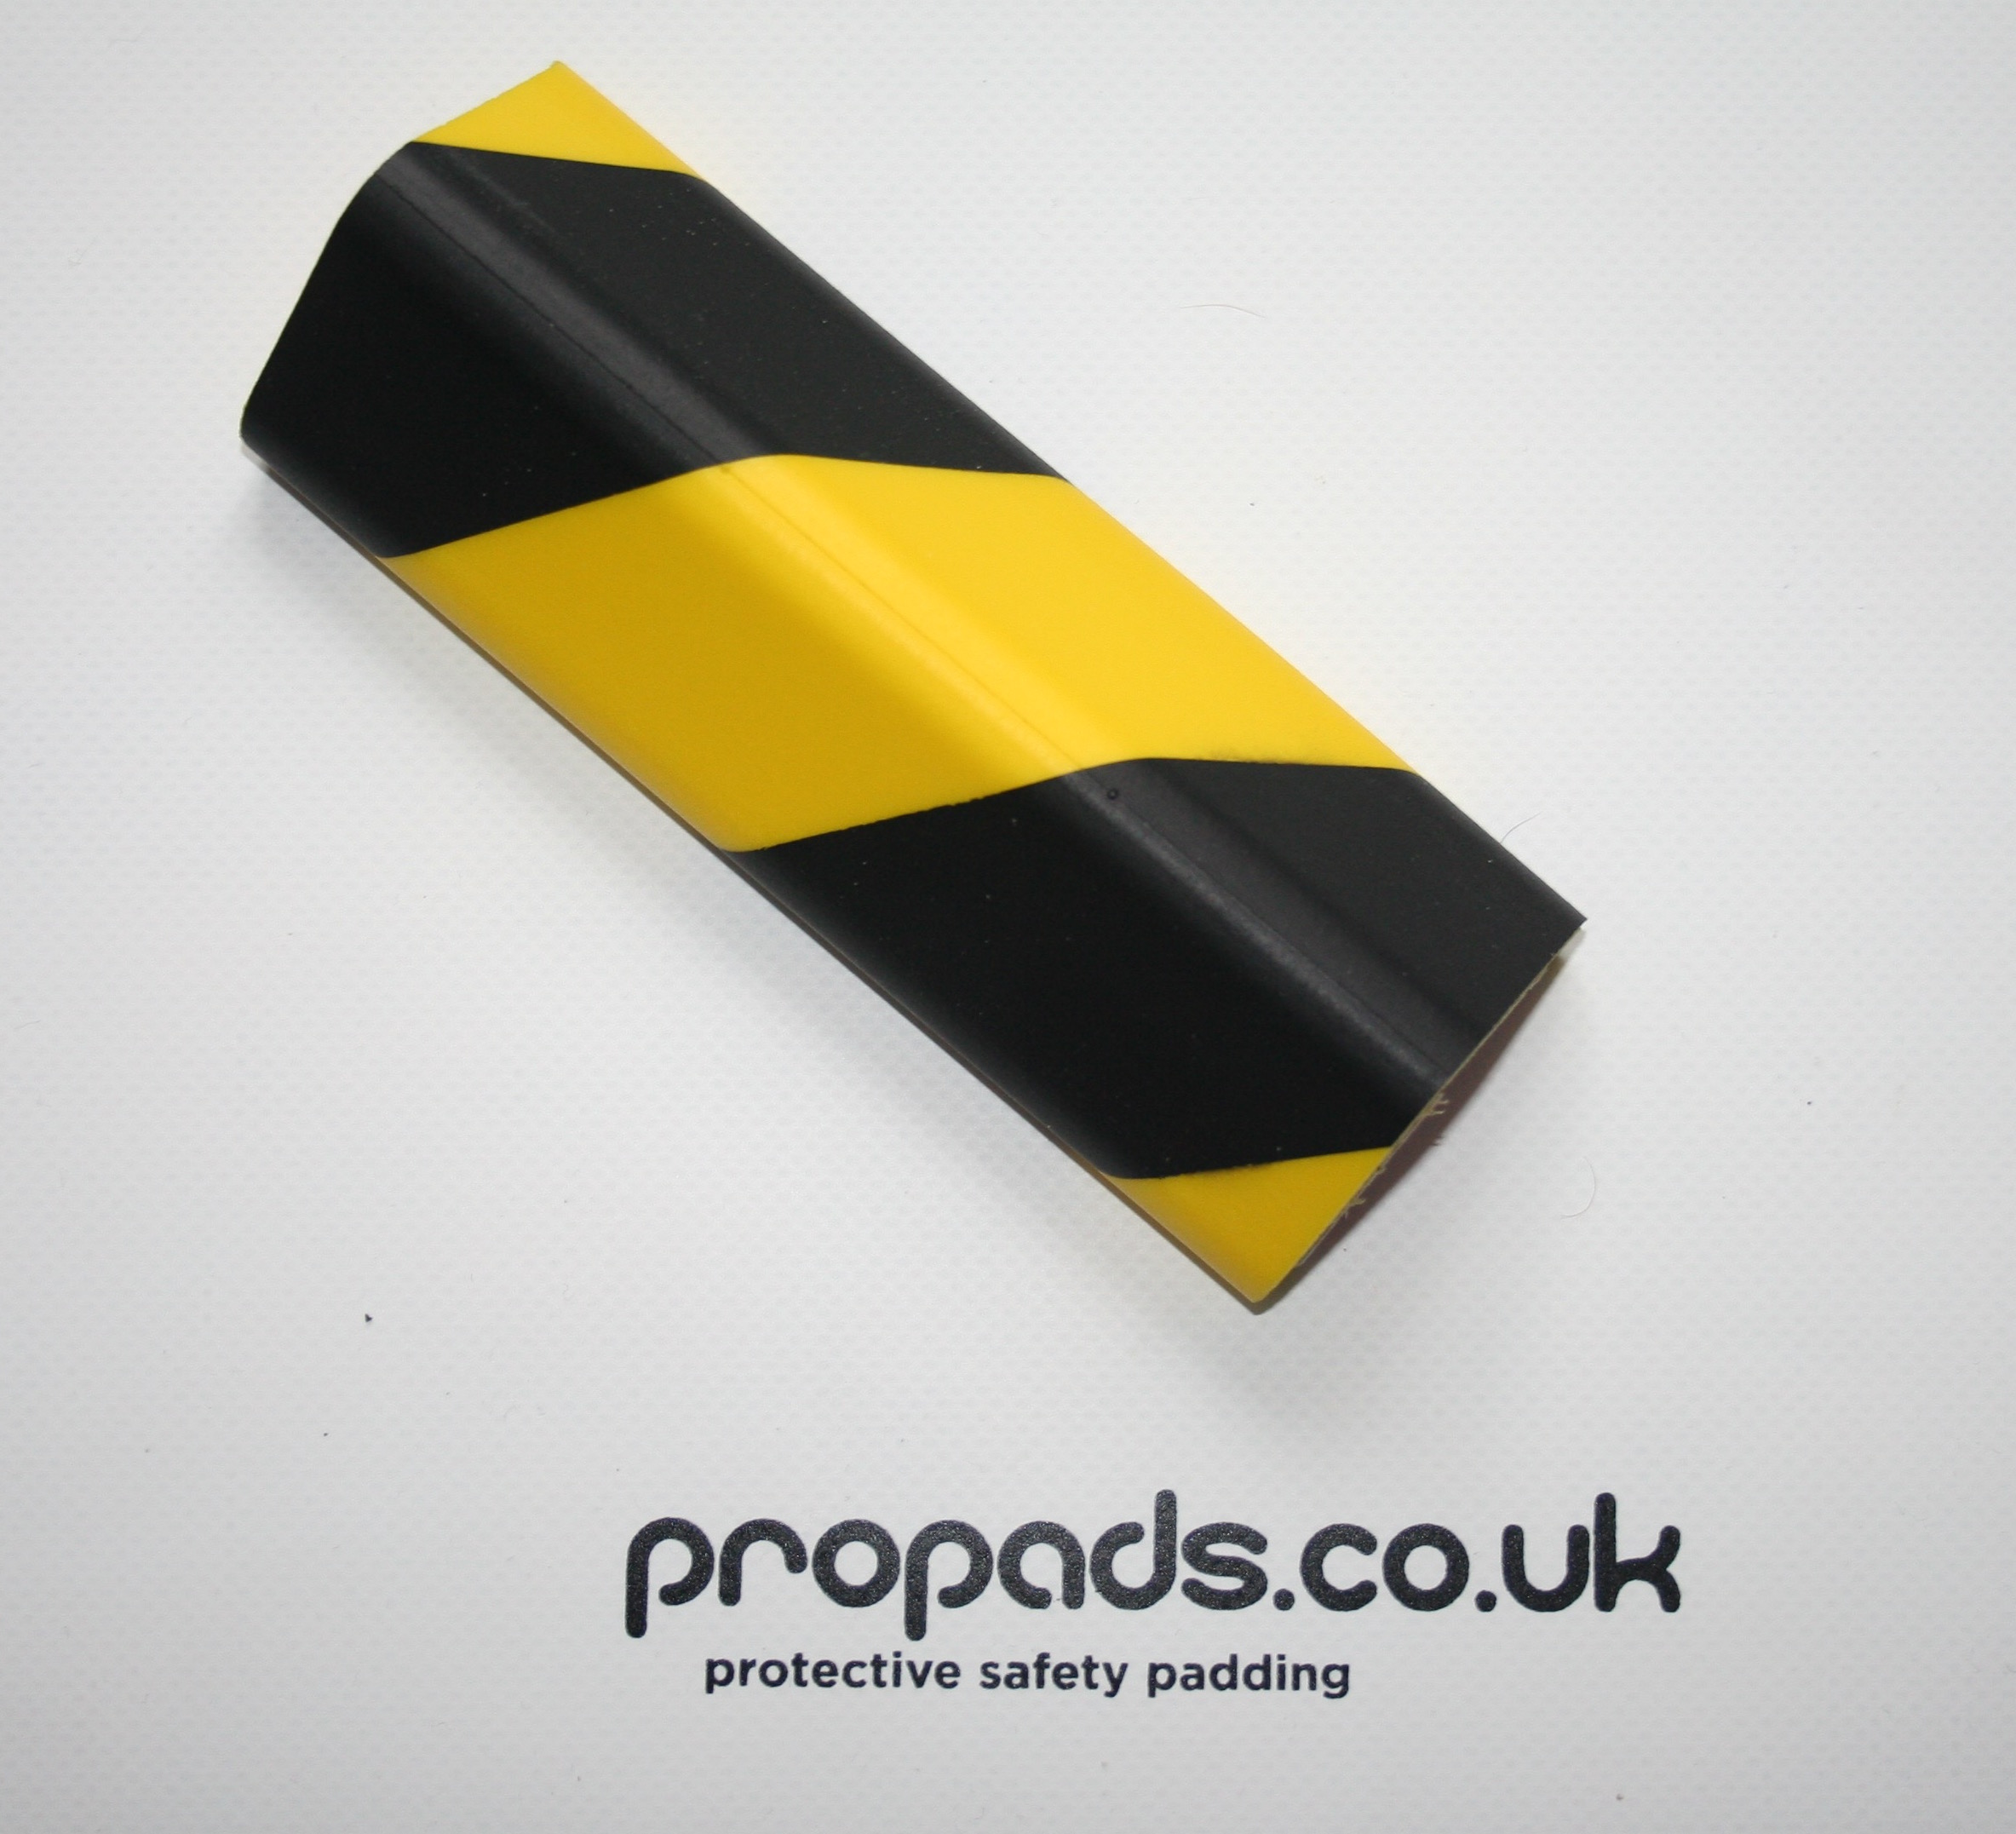 Safety Corner Guard Propads